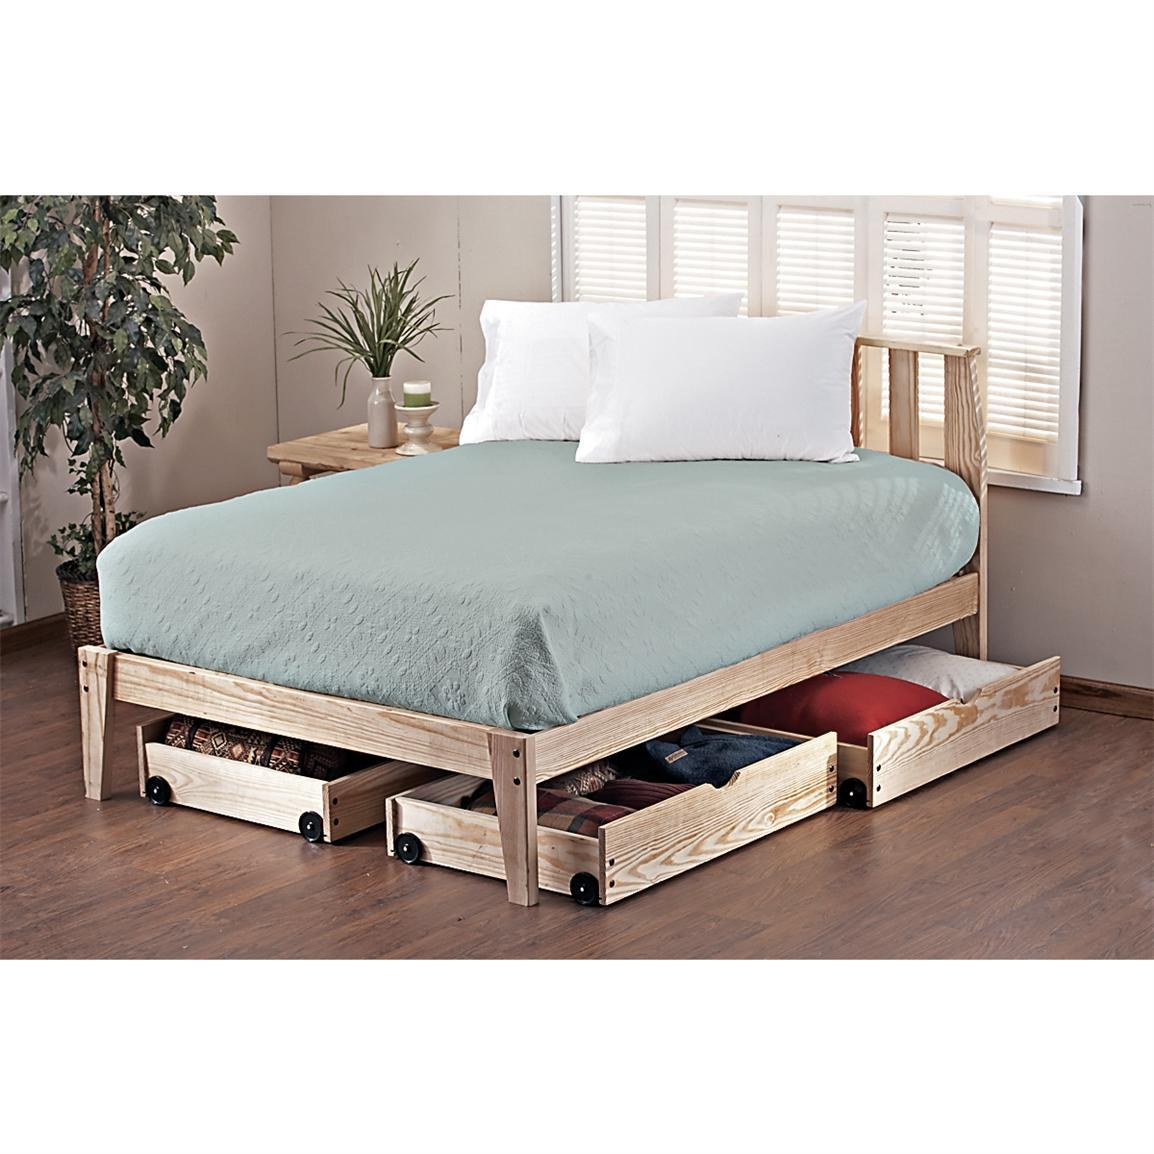 Wooden Twin Bed Frame Design